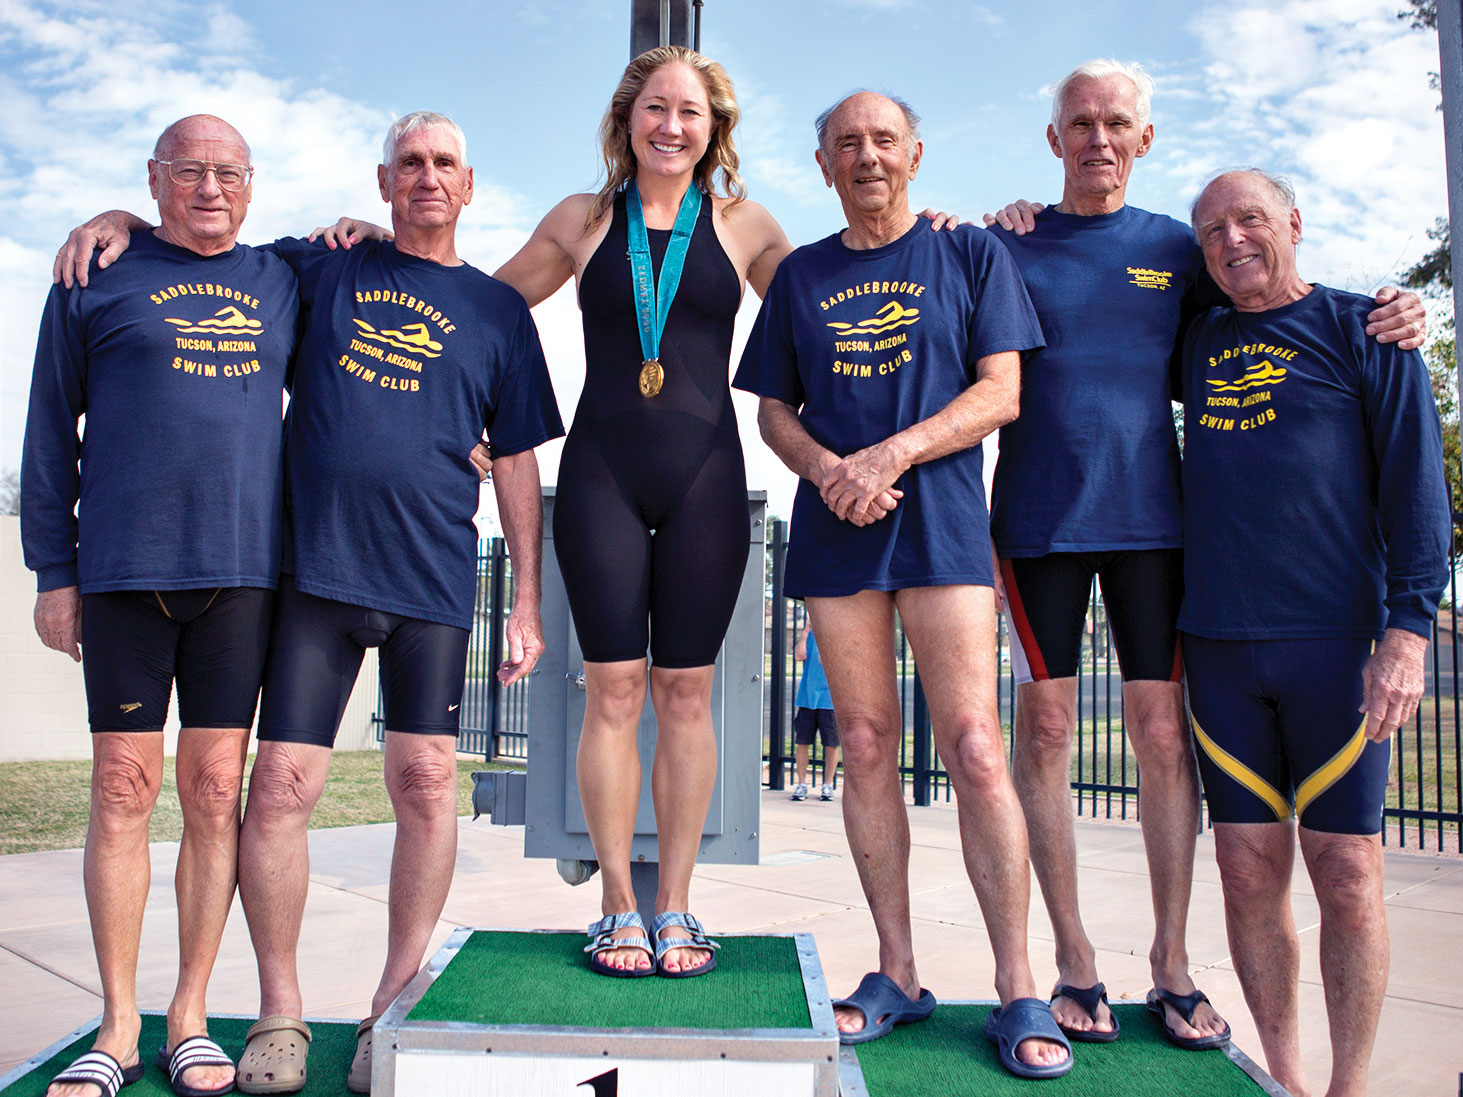 Olympic Gold Medalist Misty Hyman congratulates five SaddleBrooke swimmers for receiving U.S.M.S. 2014 All American.